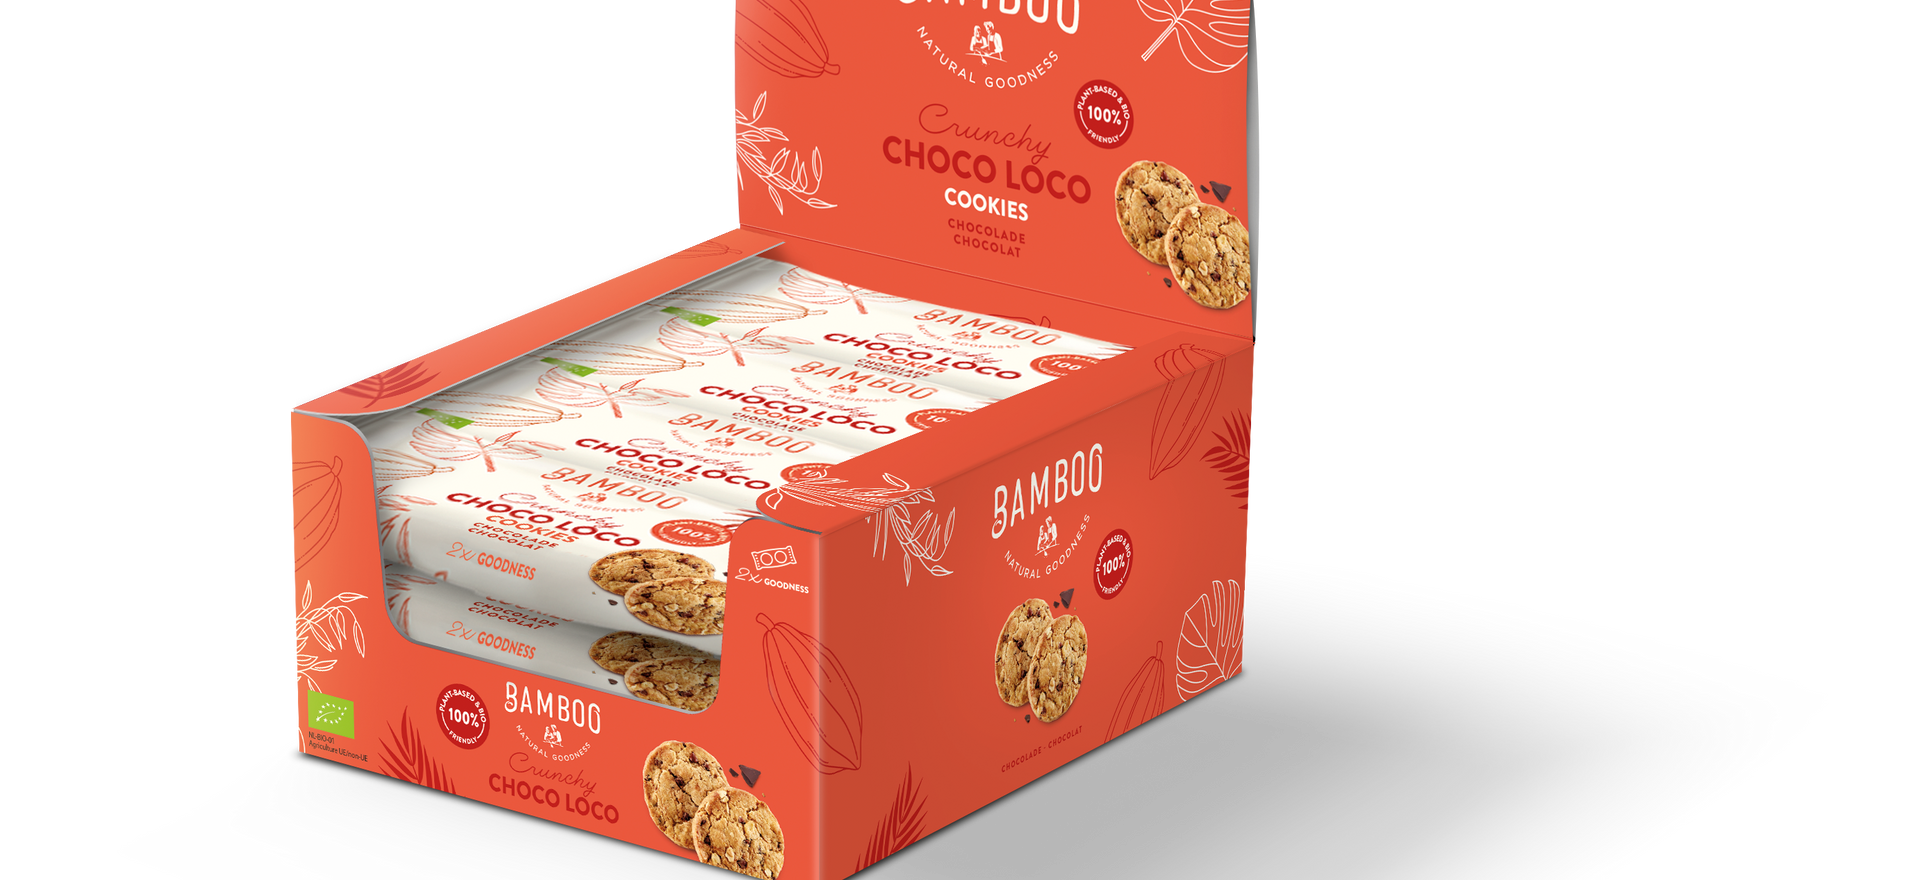 Bamboo Display portion pack_ChocoLoco.pn